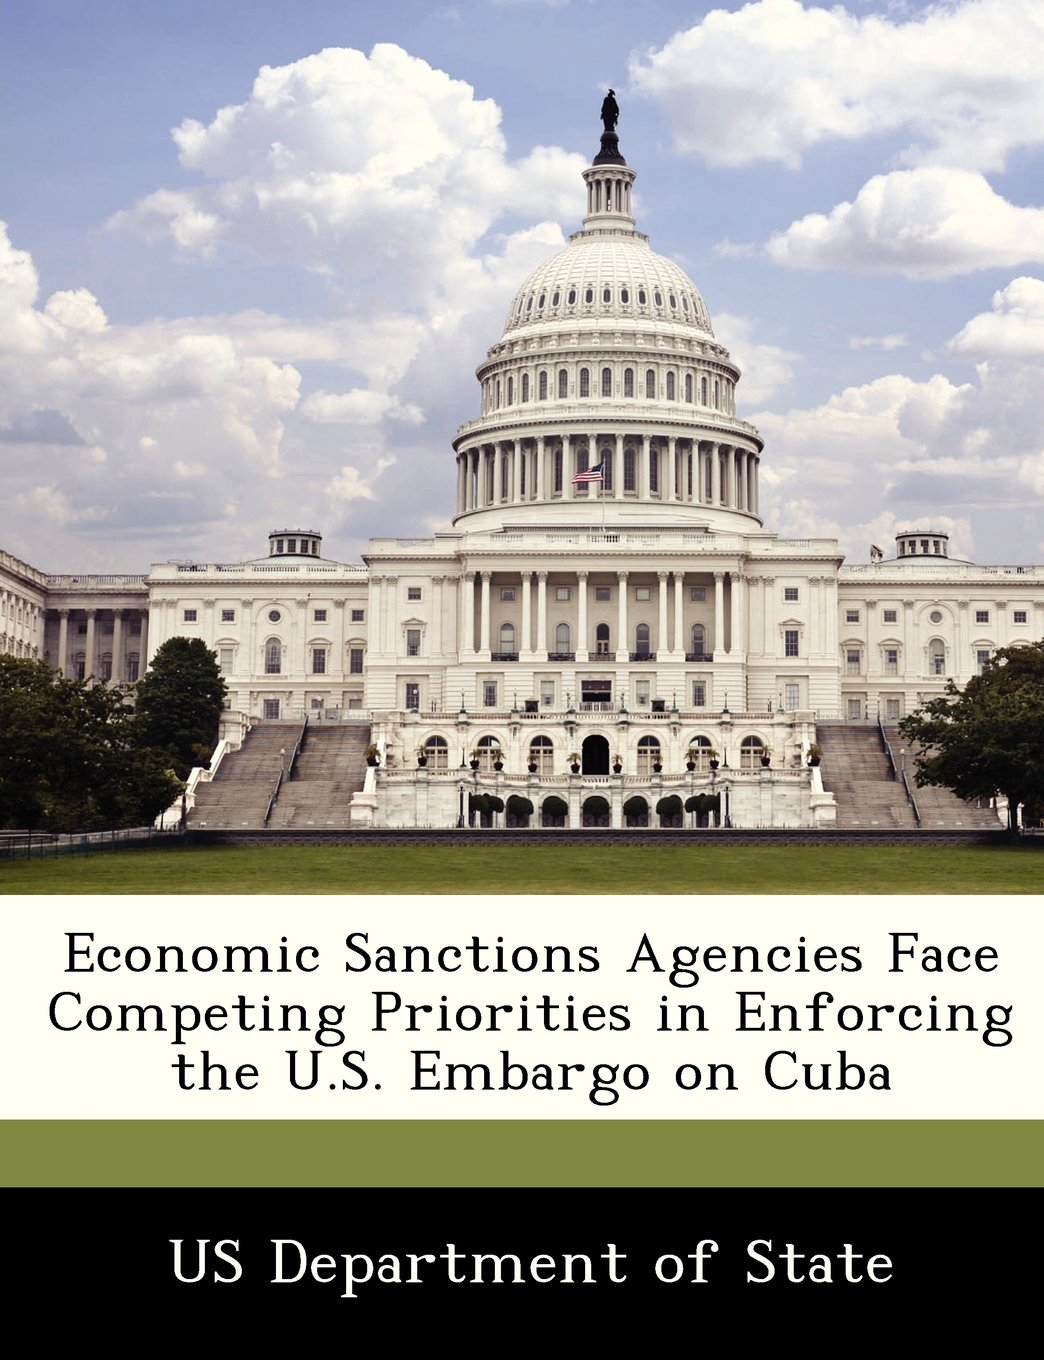 Economic Sanctions Agencies Face Competing Priorities in Enforcing the U.S. Embargo on Cuba pdf